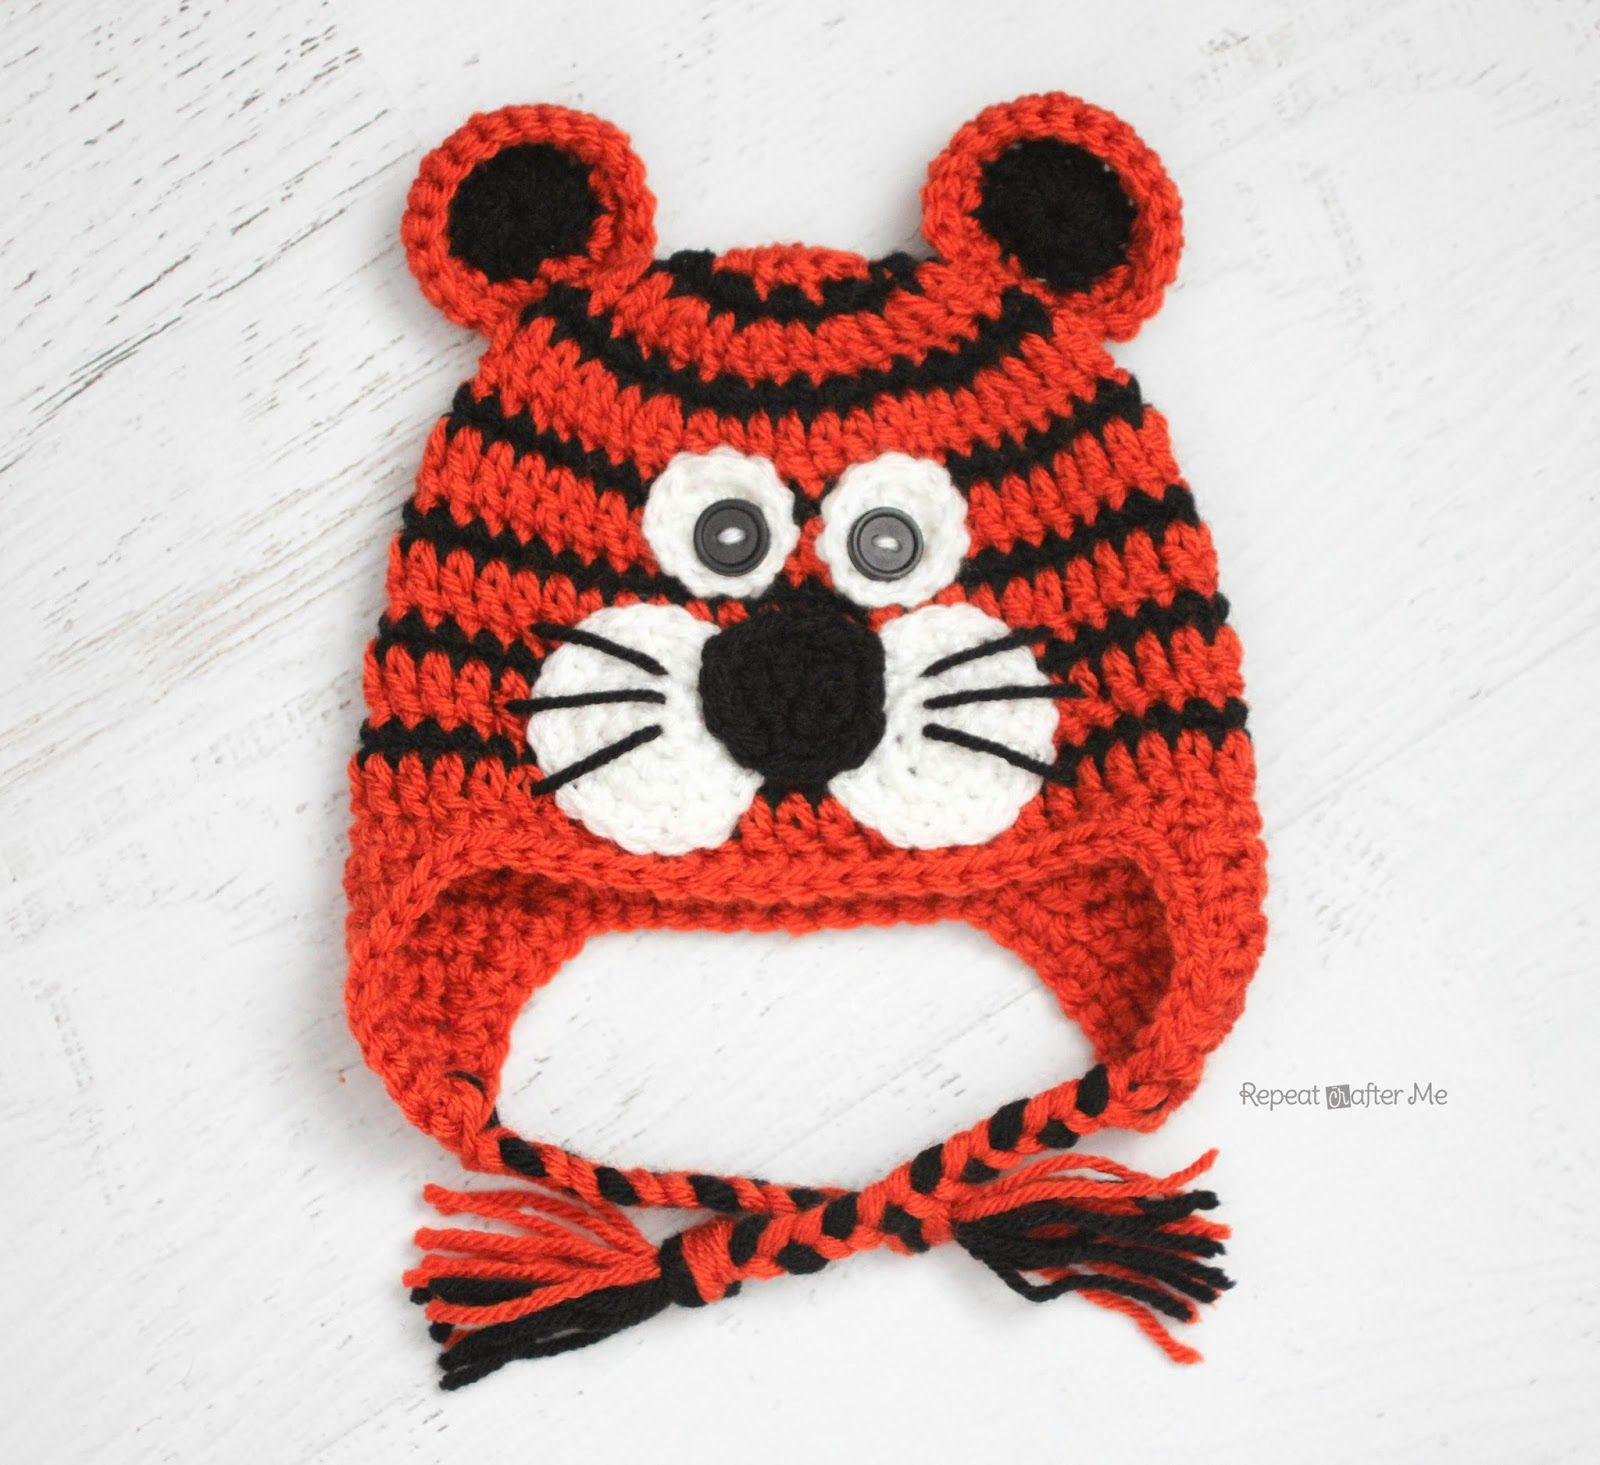 Crochet tiger hat pattern repeat crafter me tigers hat crochet tiger hat pattern repeat crafter me bankloansurffo Image collections